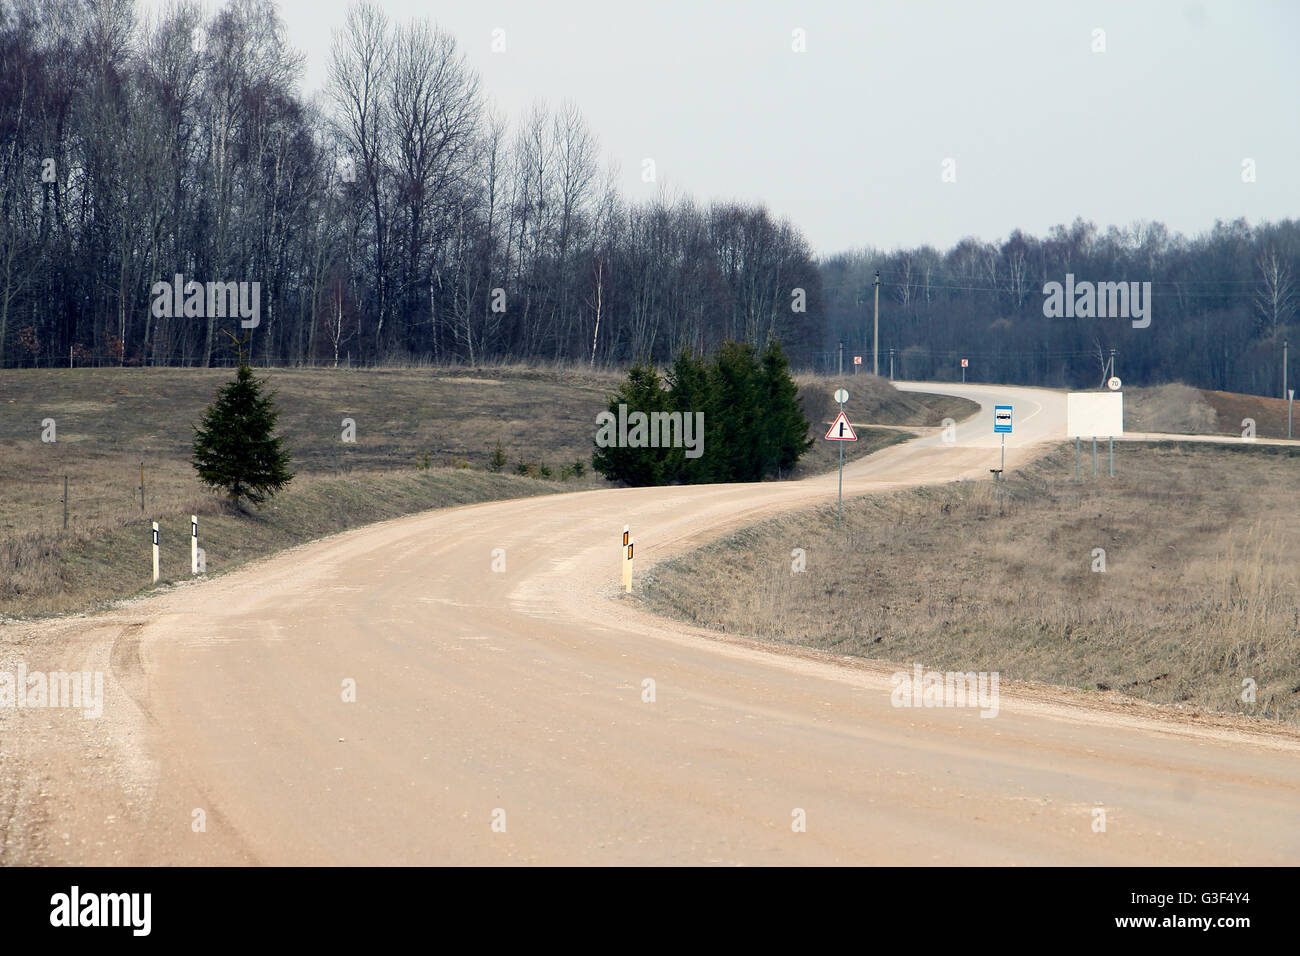 Twisting winding meandering gravel road in meadow with signs near forest - Stock Image